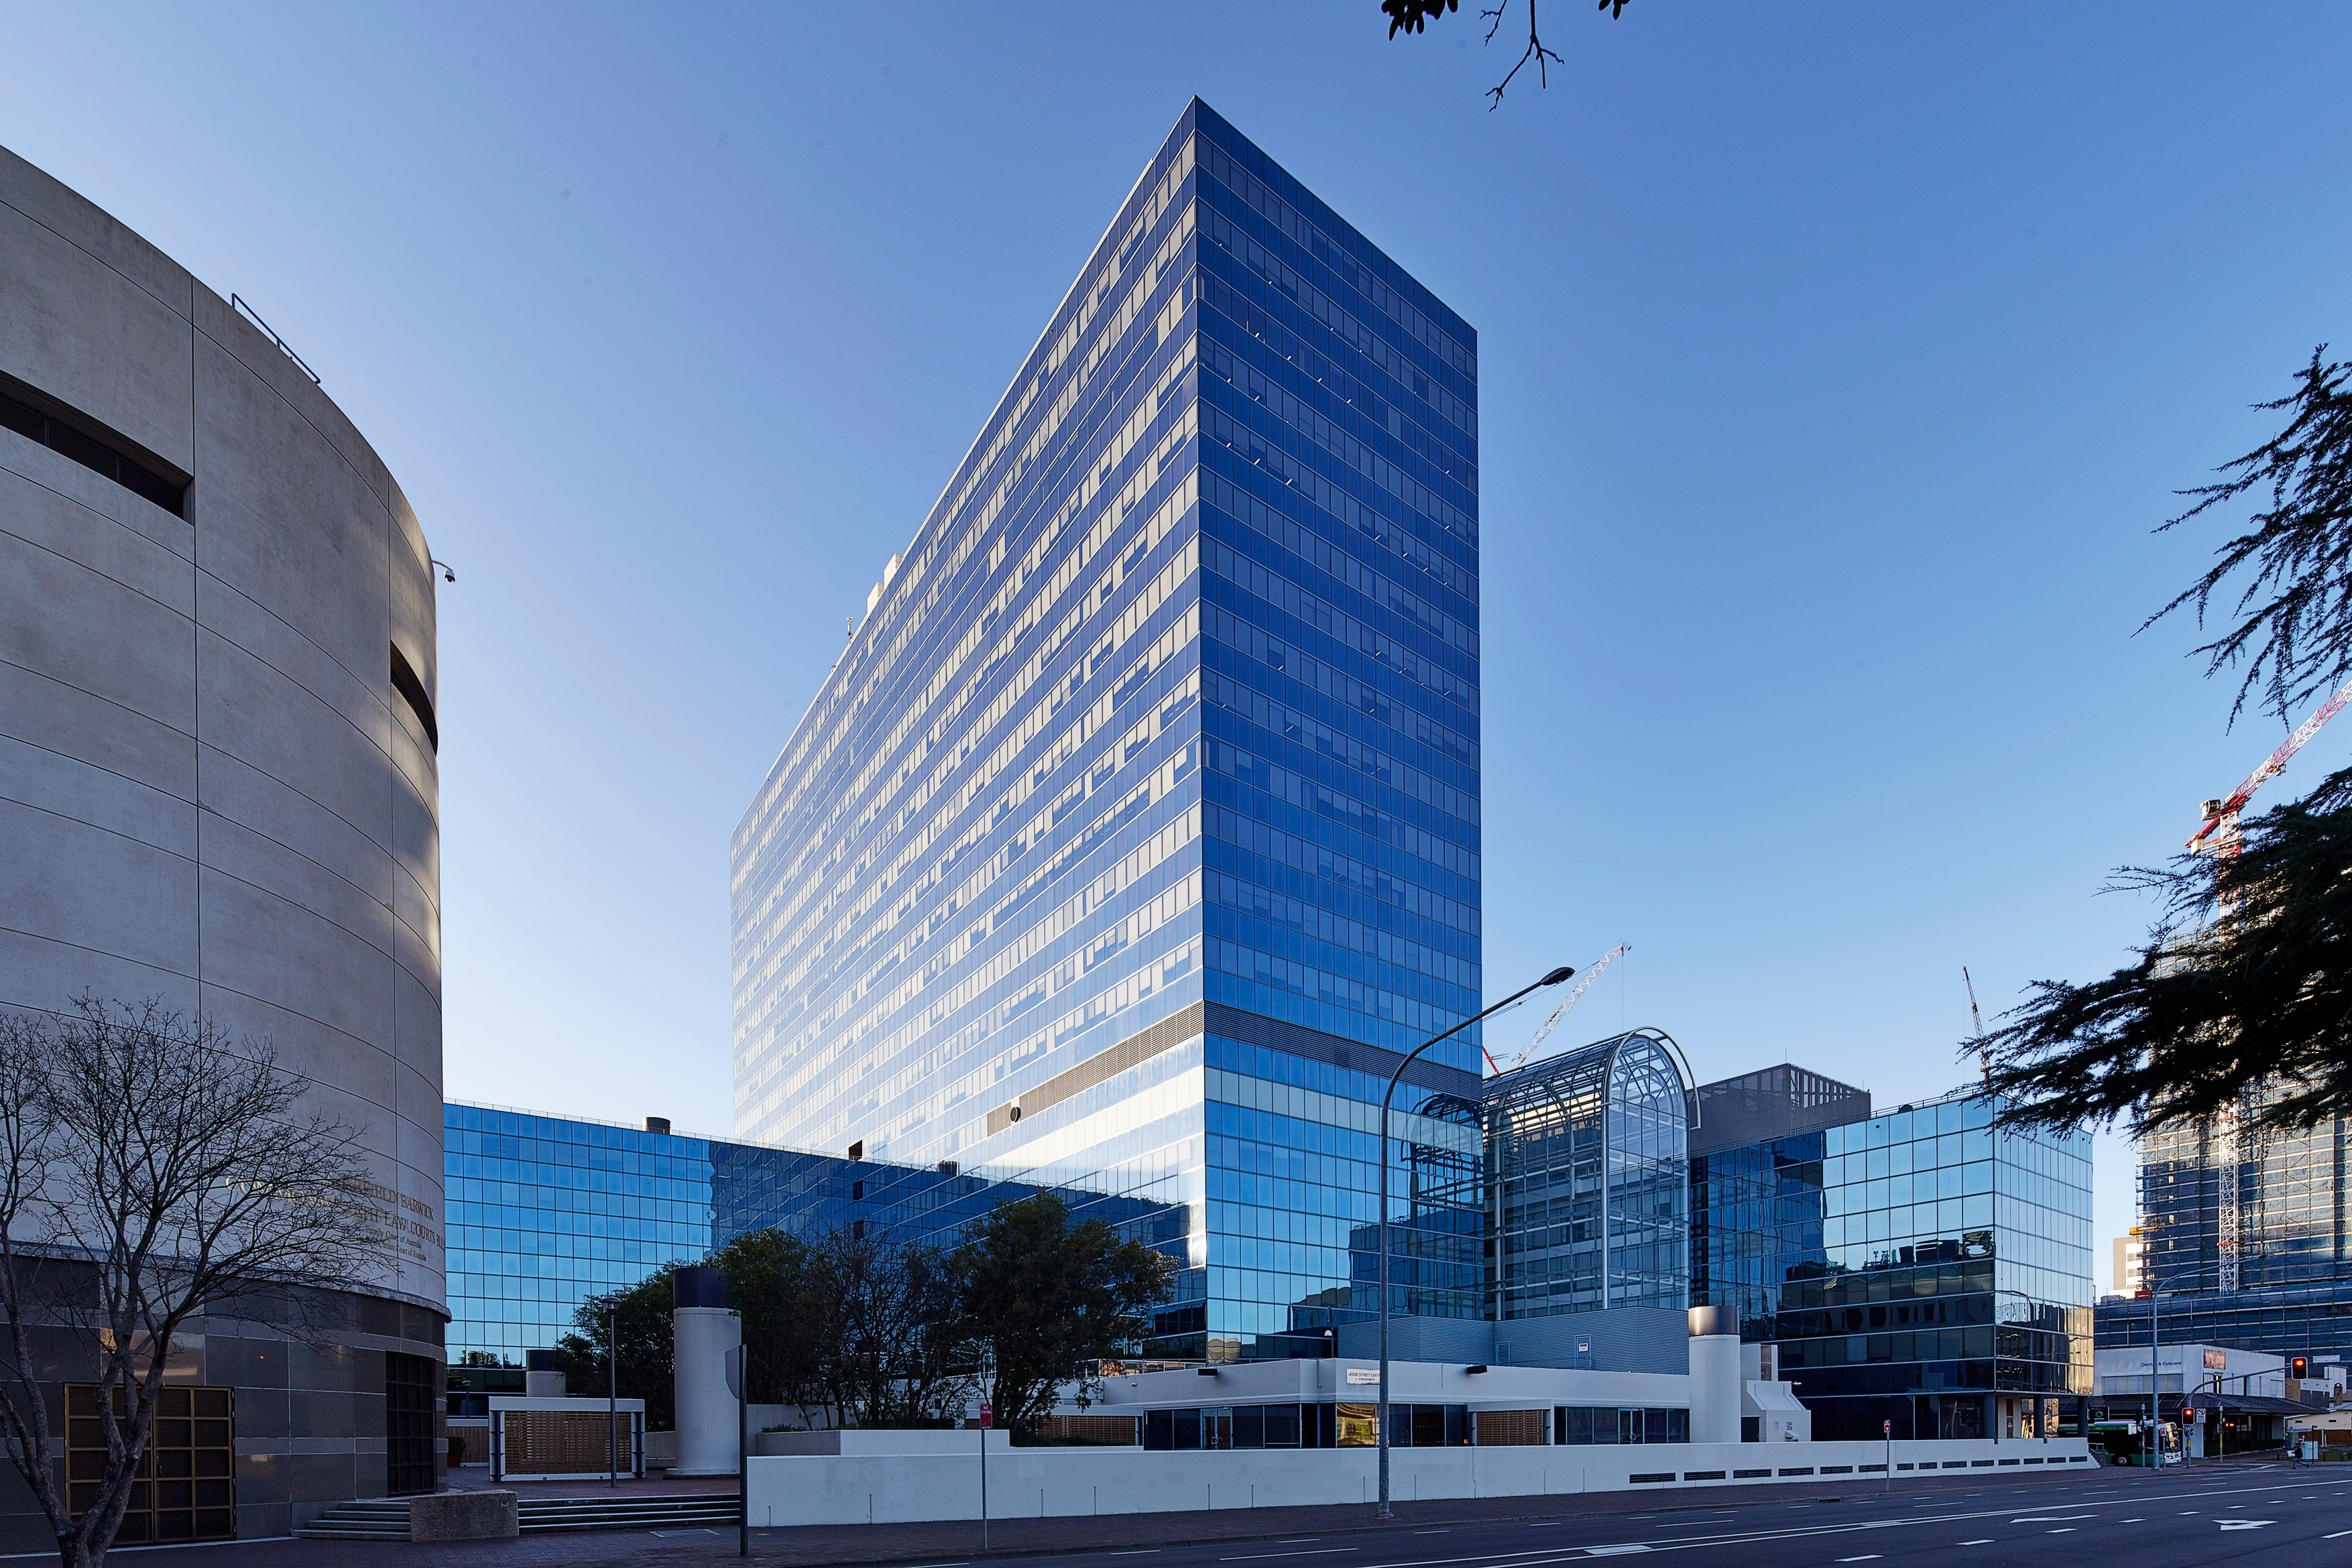 Hanson Parramatta Fitout Tenant Representation, Interior Design, Project & Construction Management Project Banner Image by PCG